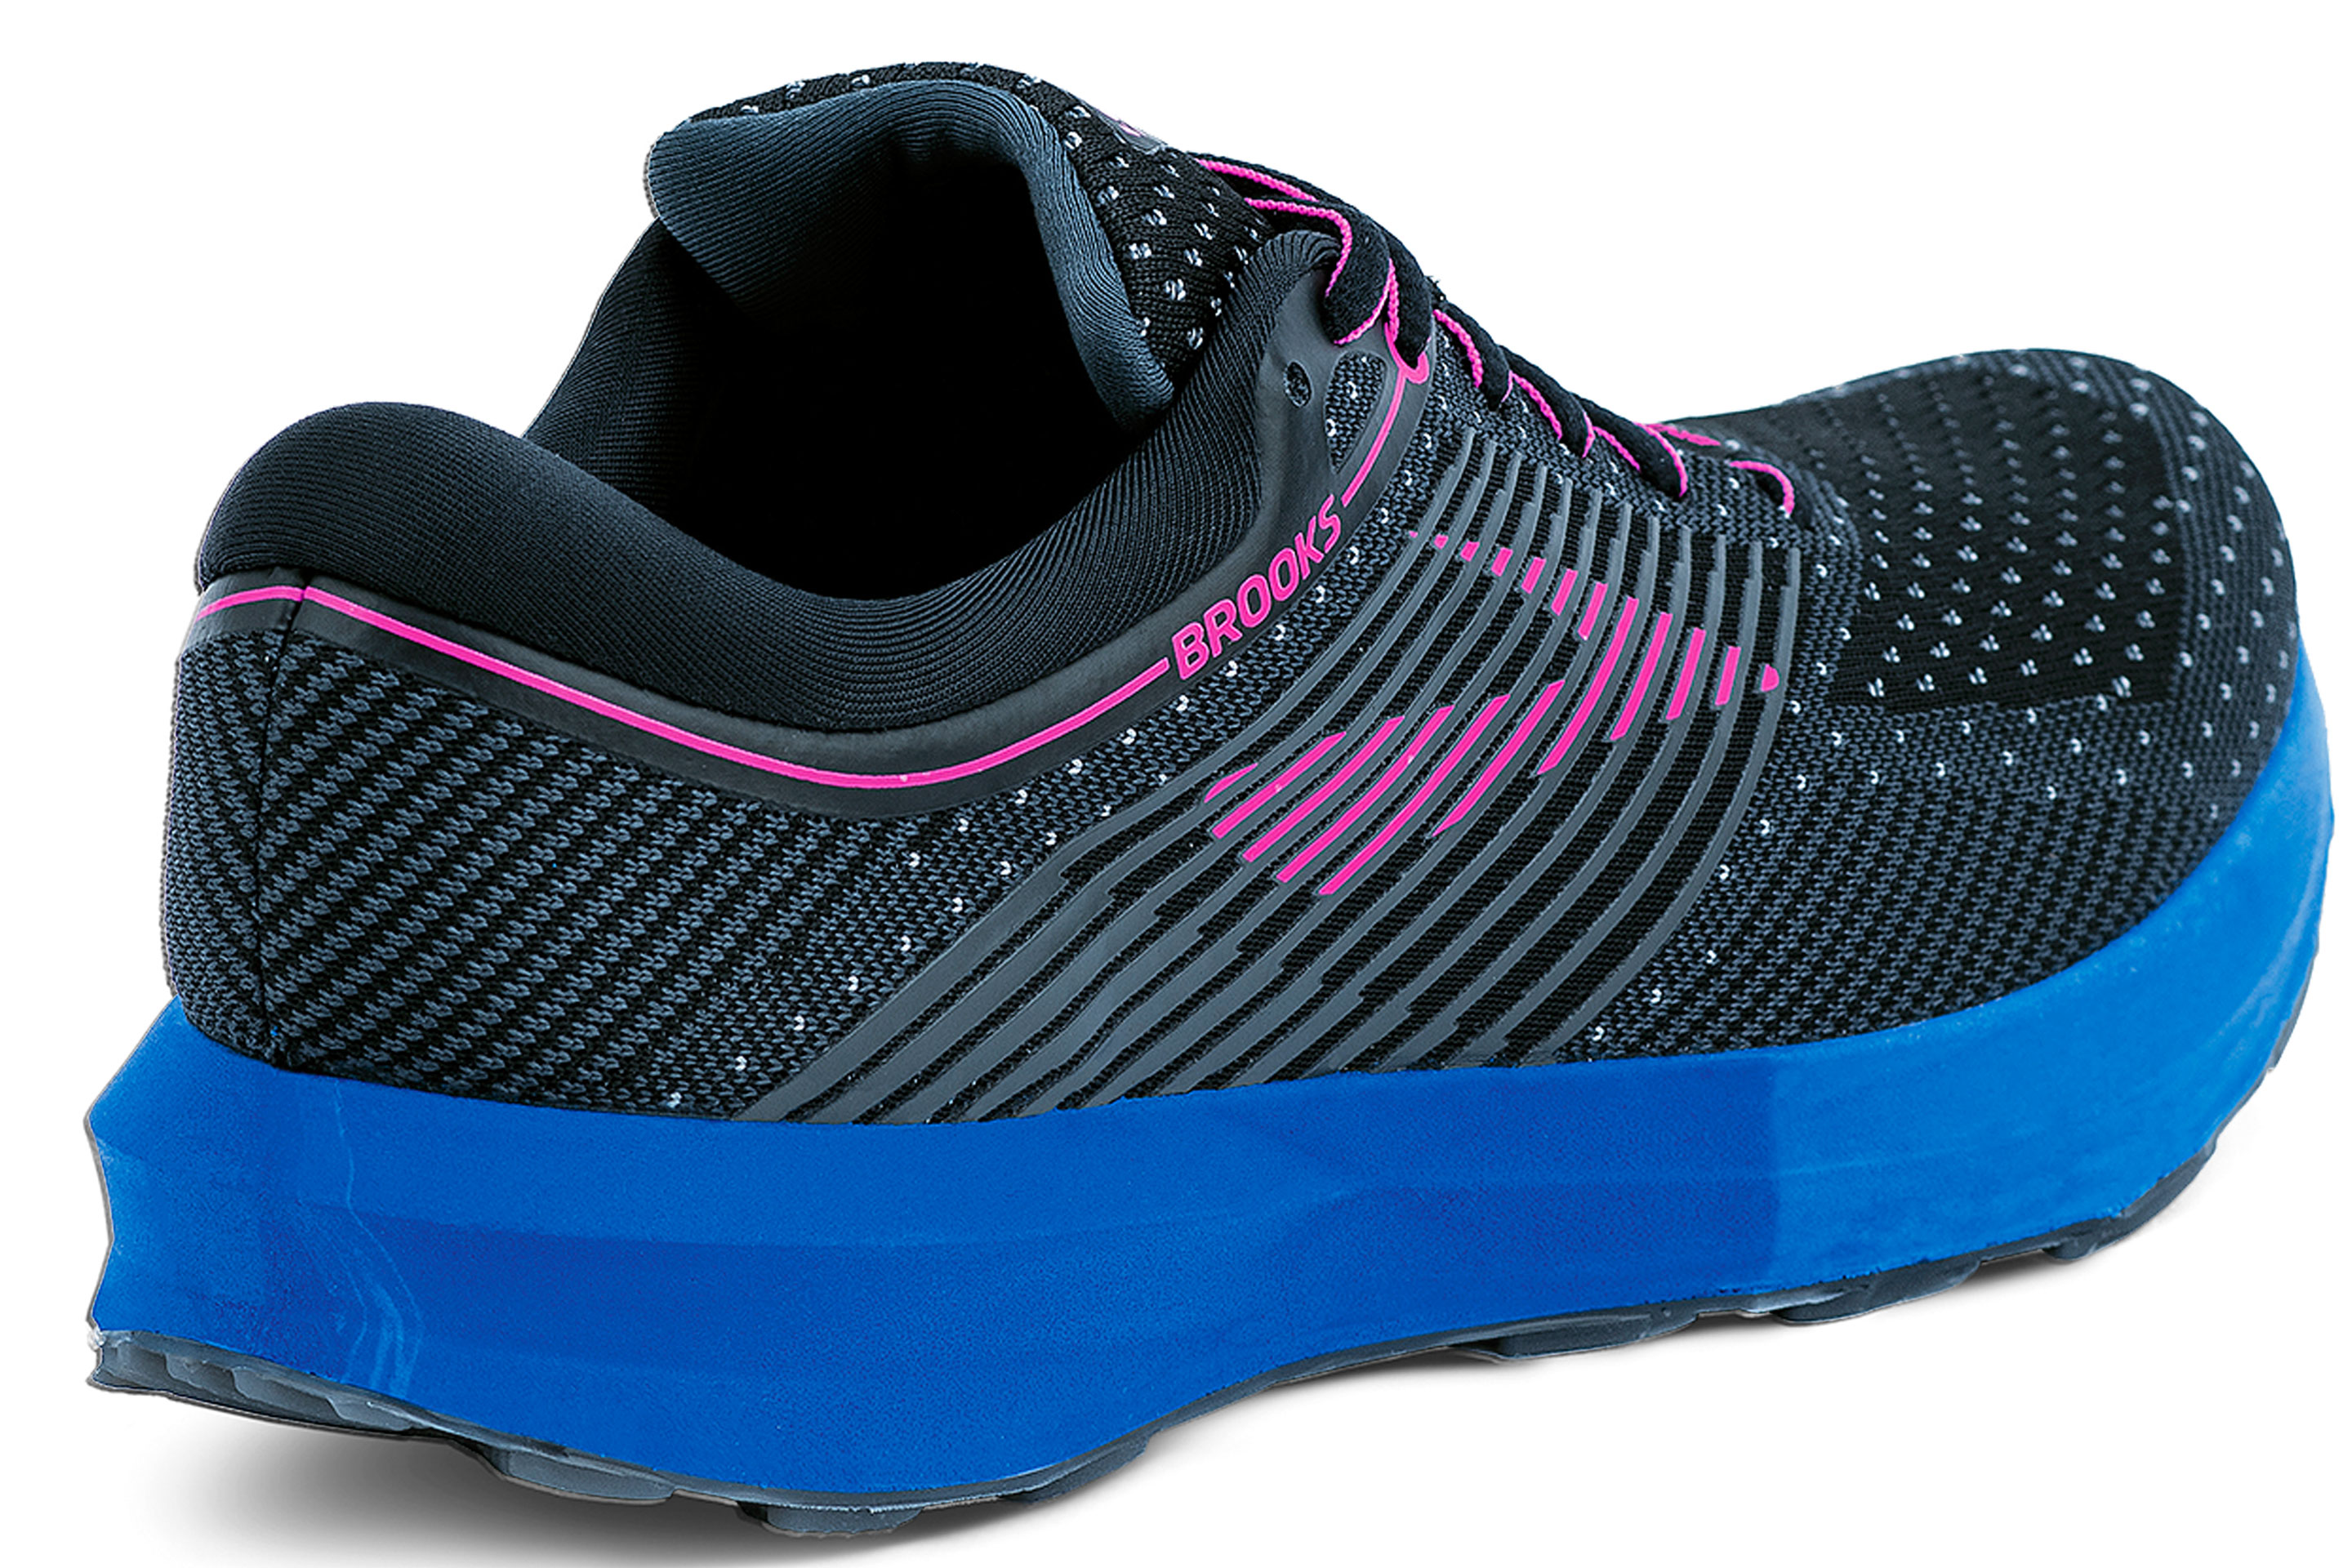 Brooks Levitate running shoe with customized sole.